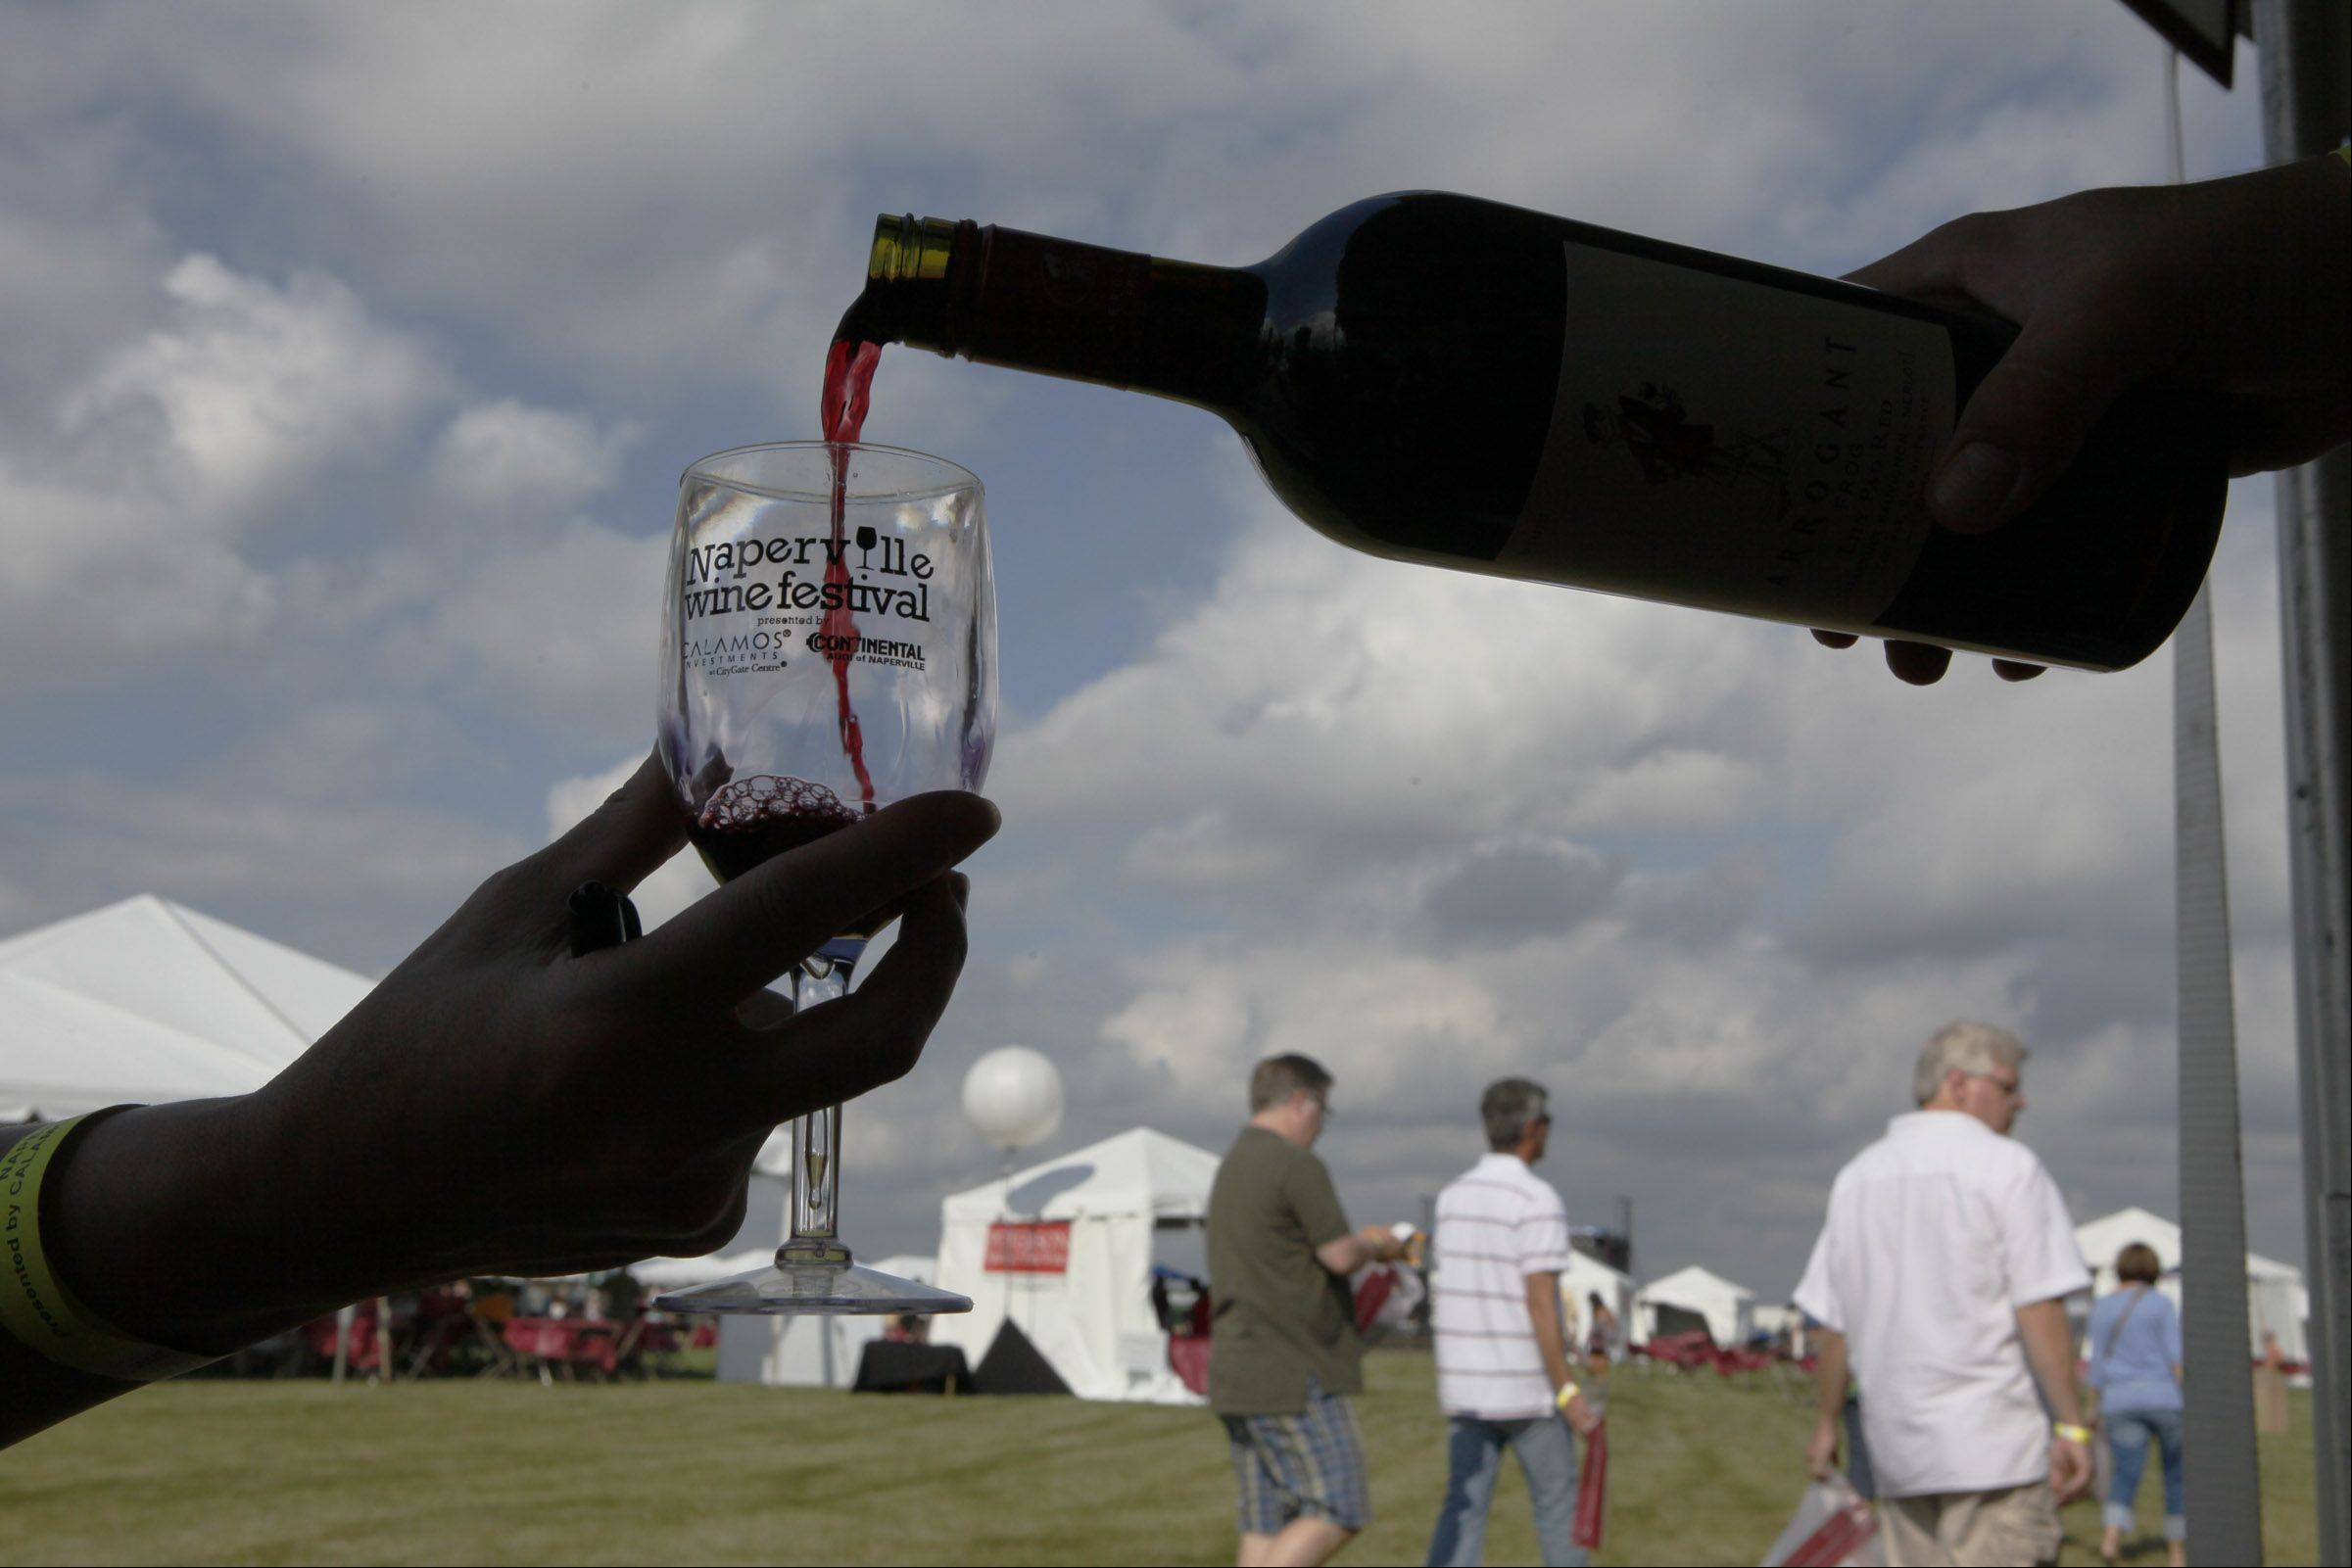 The Naperville Wine Festival offers chances for visitors to taste and judge wine as well as wine seminars and opportunities to pair wine with food.